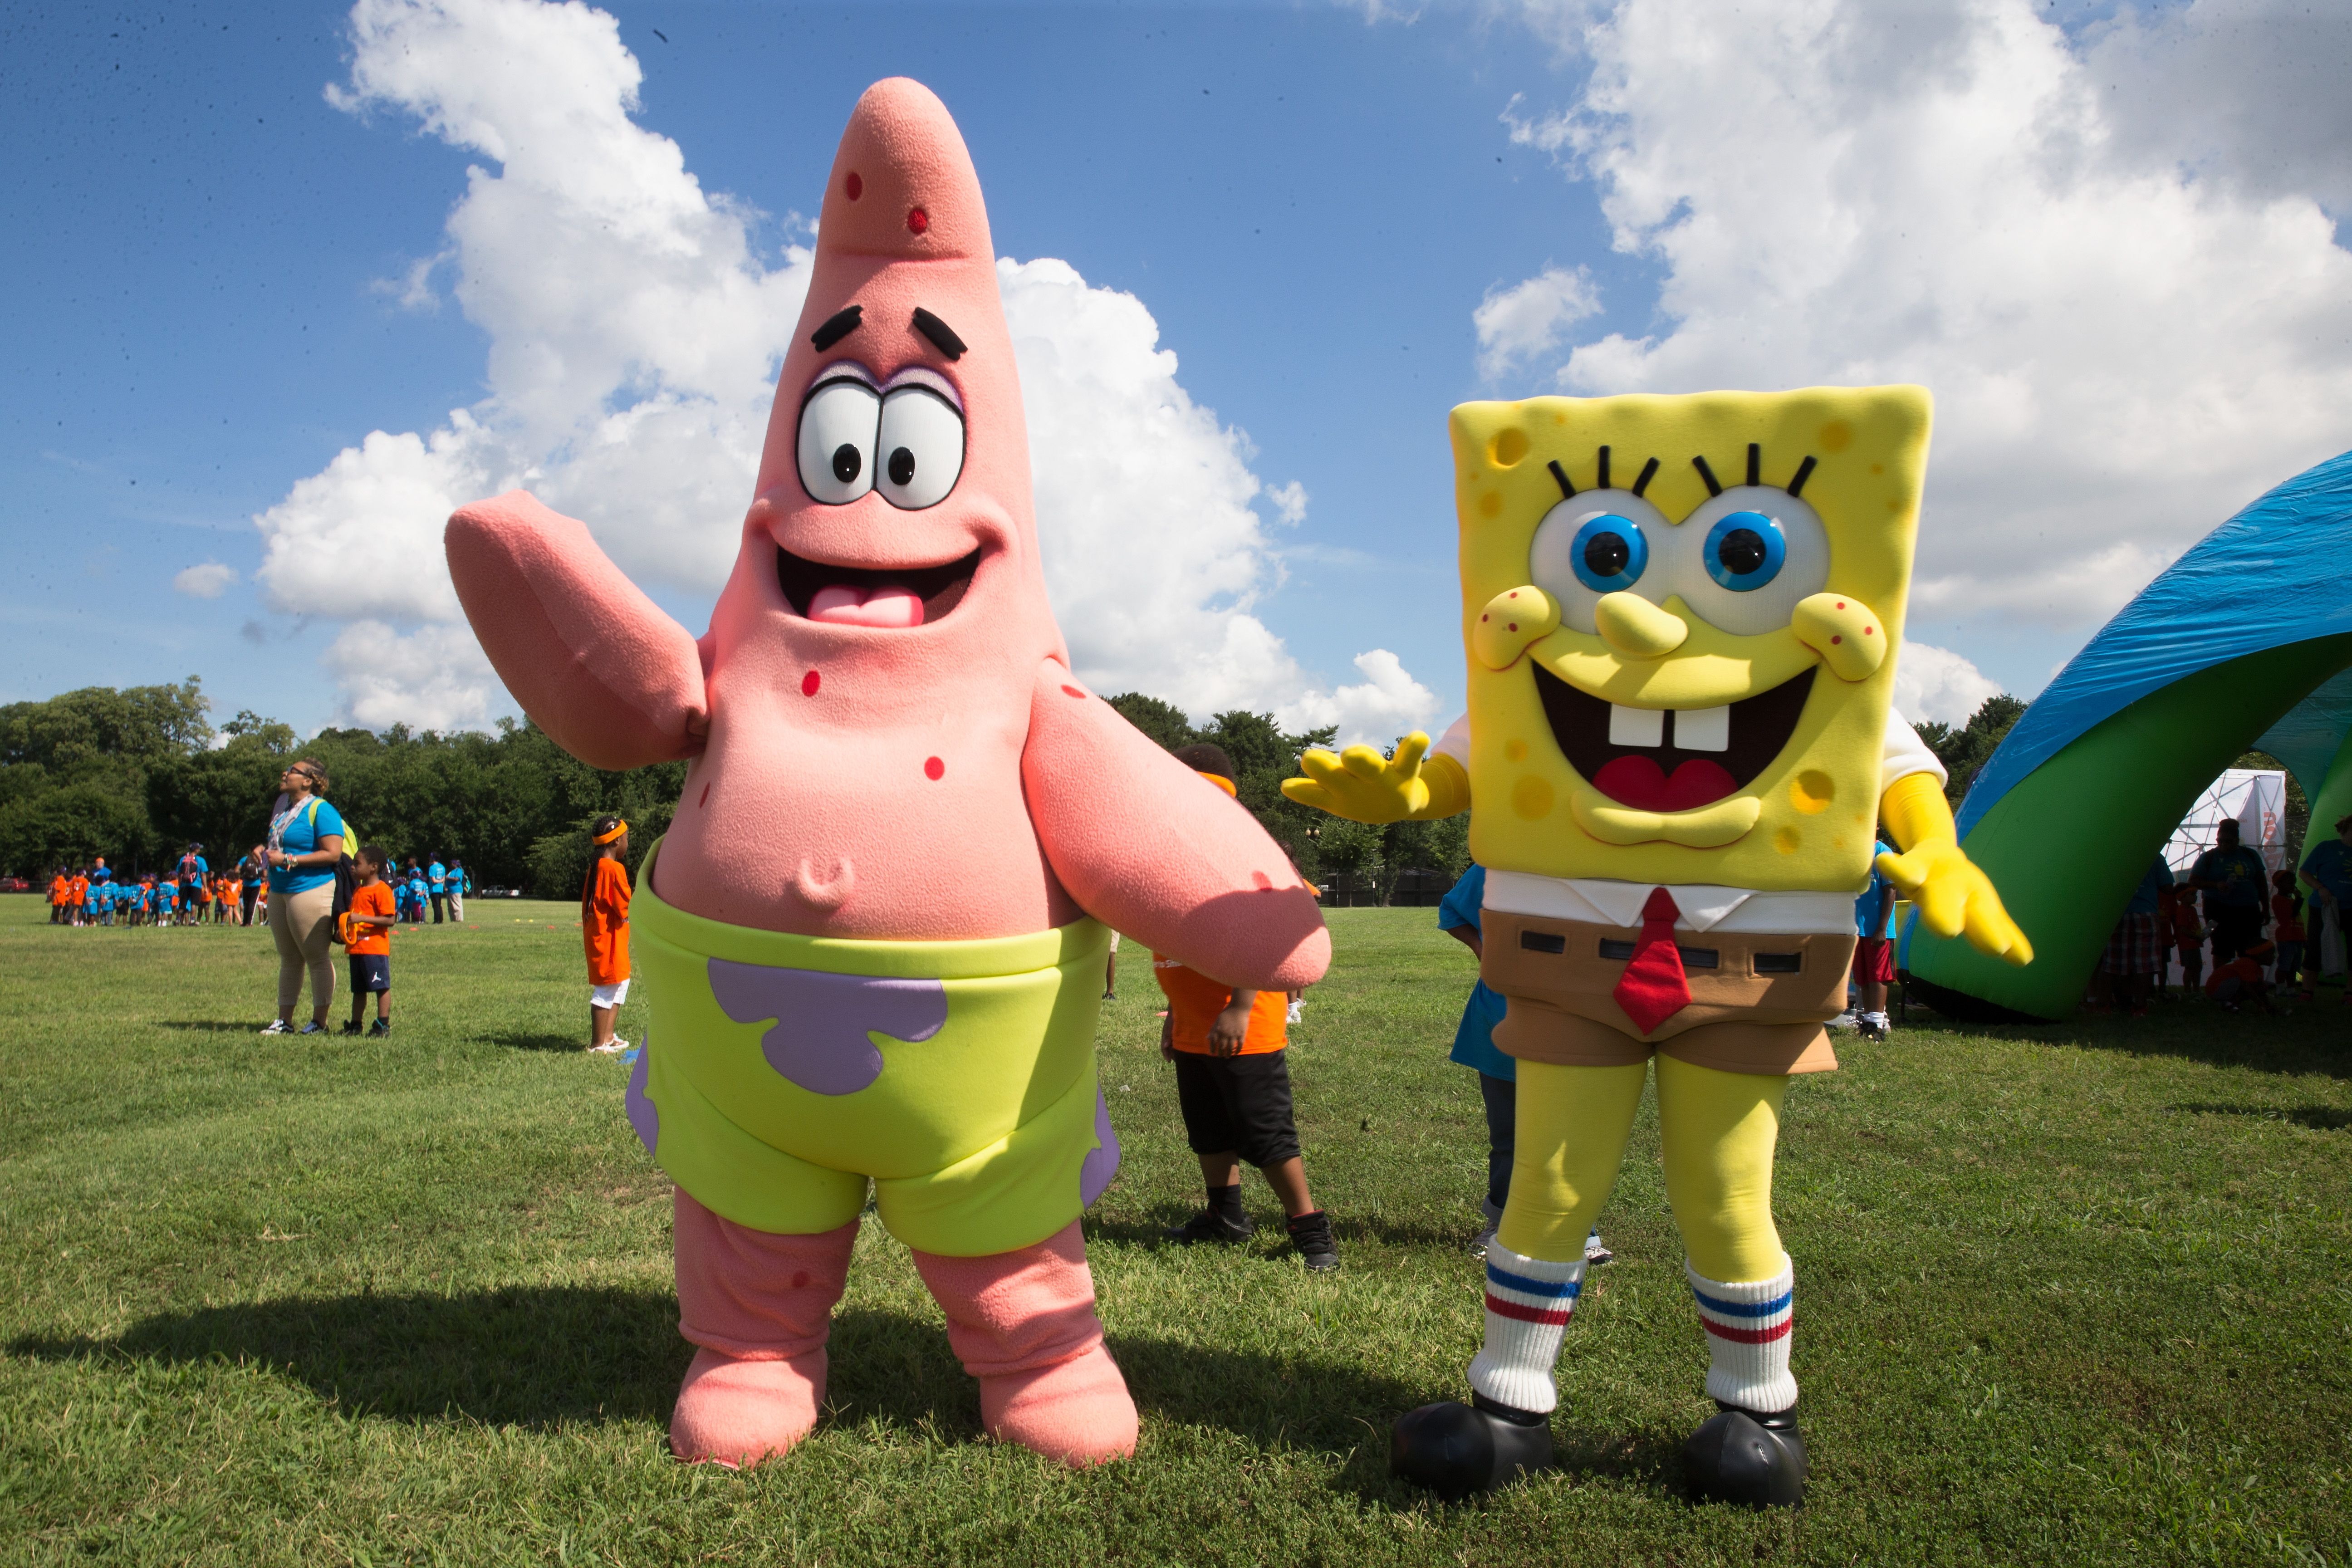 Patrick and Spongebob take part in the Worldwide Day of Play on July 26, 2017 in Washington, DC.